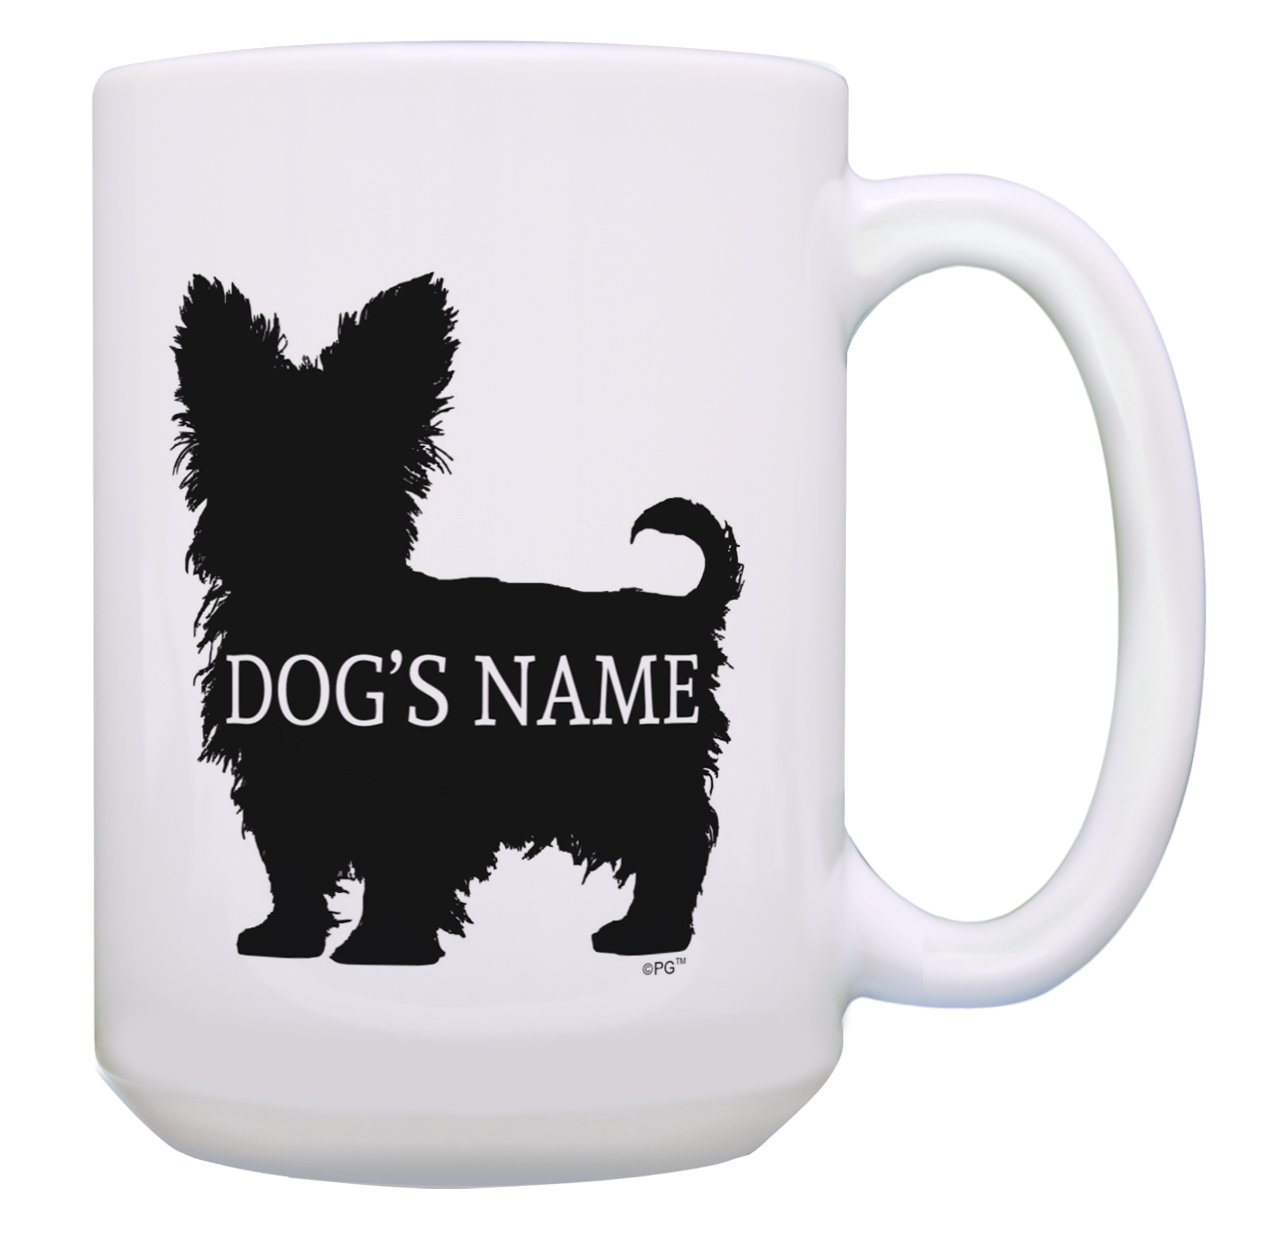 Amazon.com: Custom Yorkie Gifts Add Dog's Name Dog Owners Personalized 2 Pack Gift Coffee Mugs Tea Cups White: Kitchen & Dining